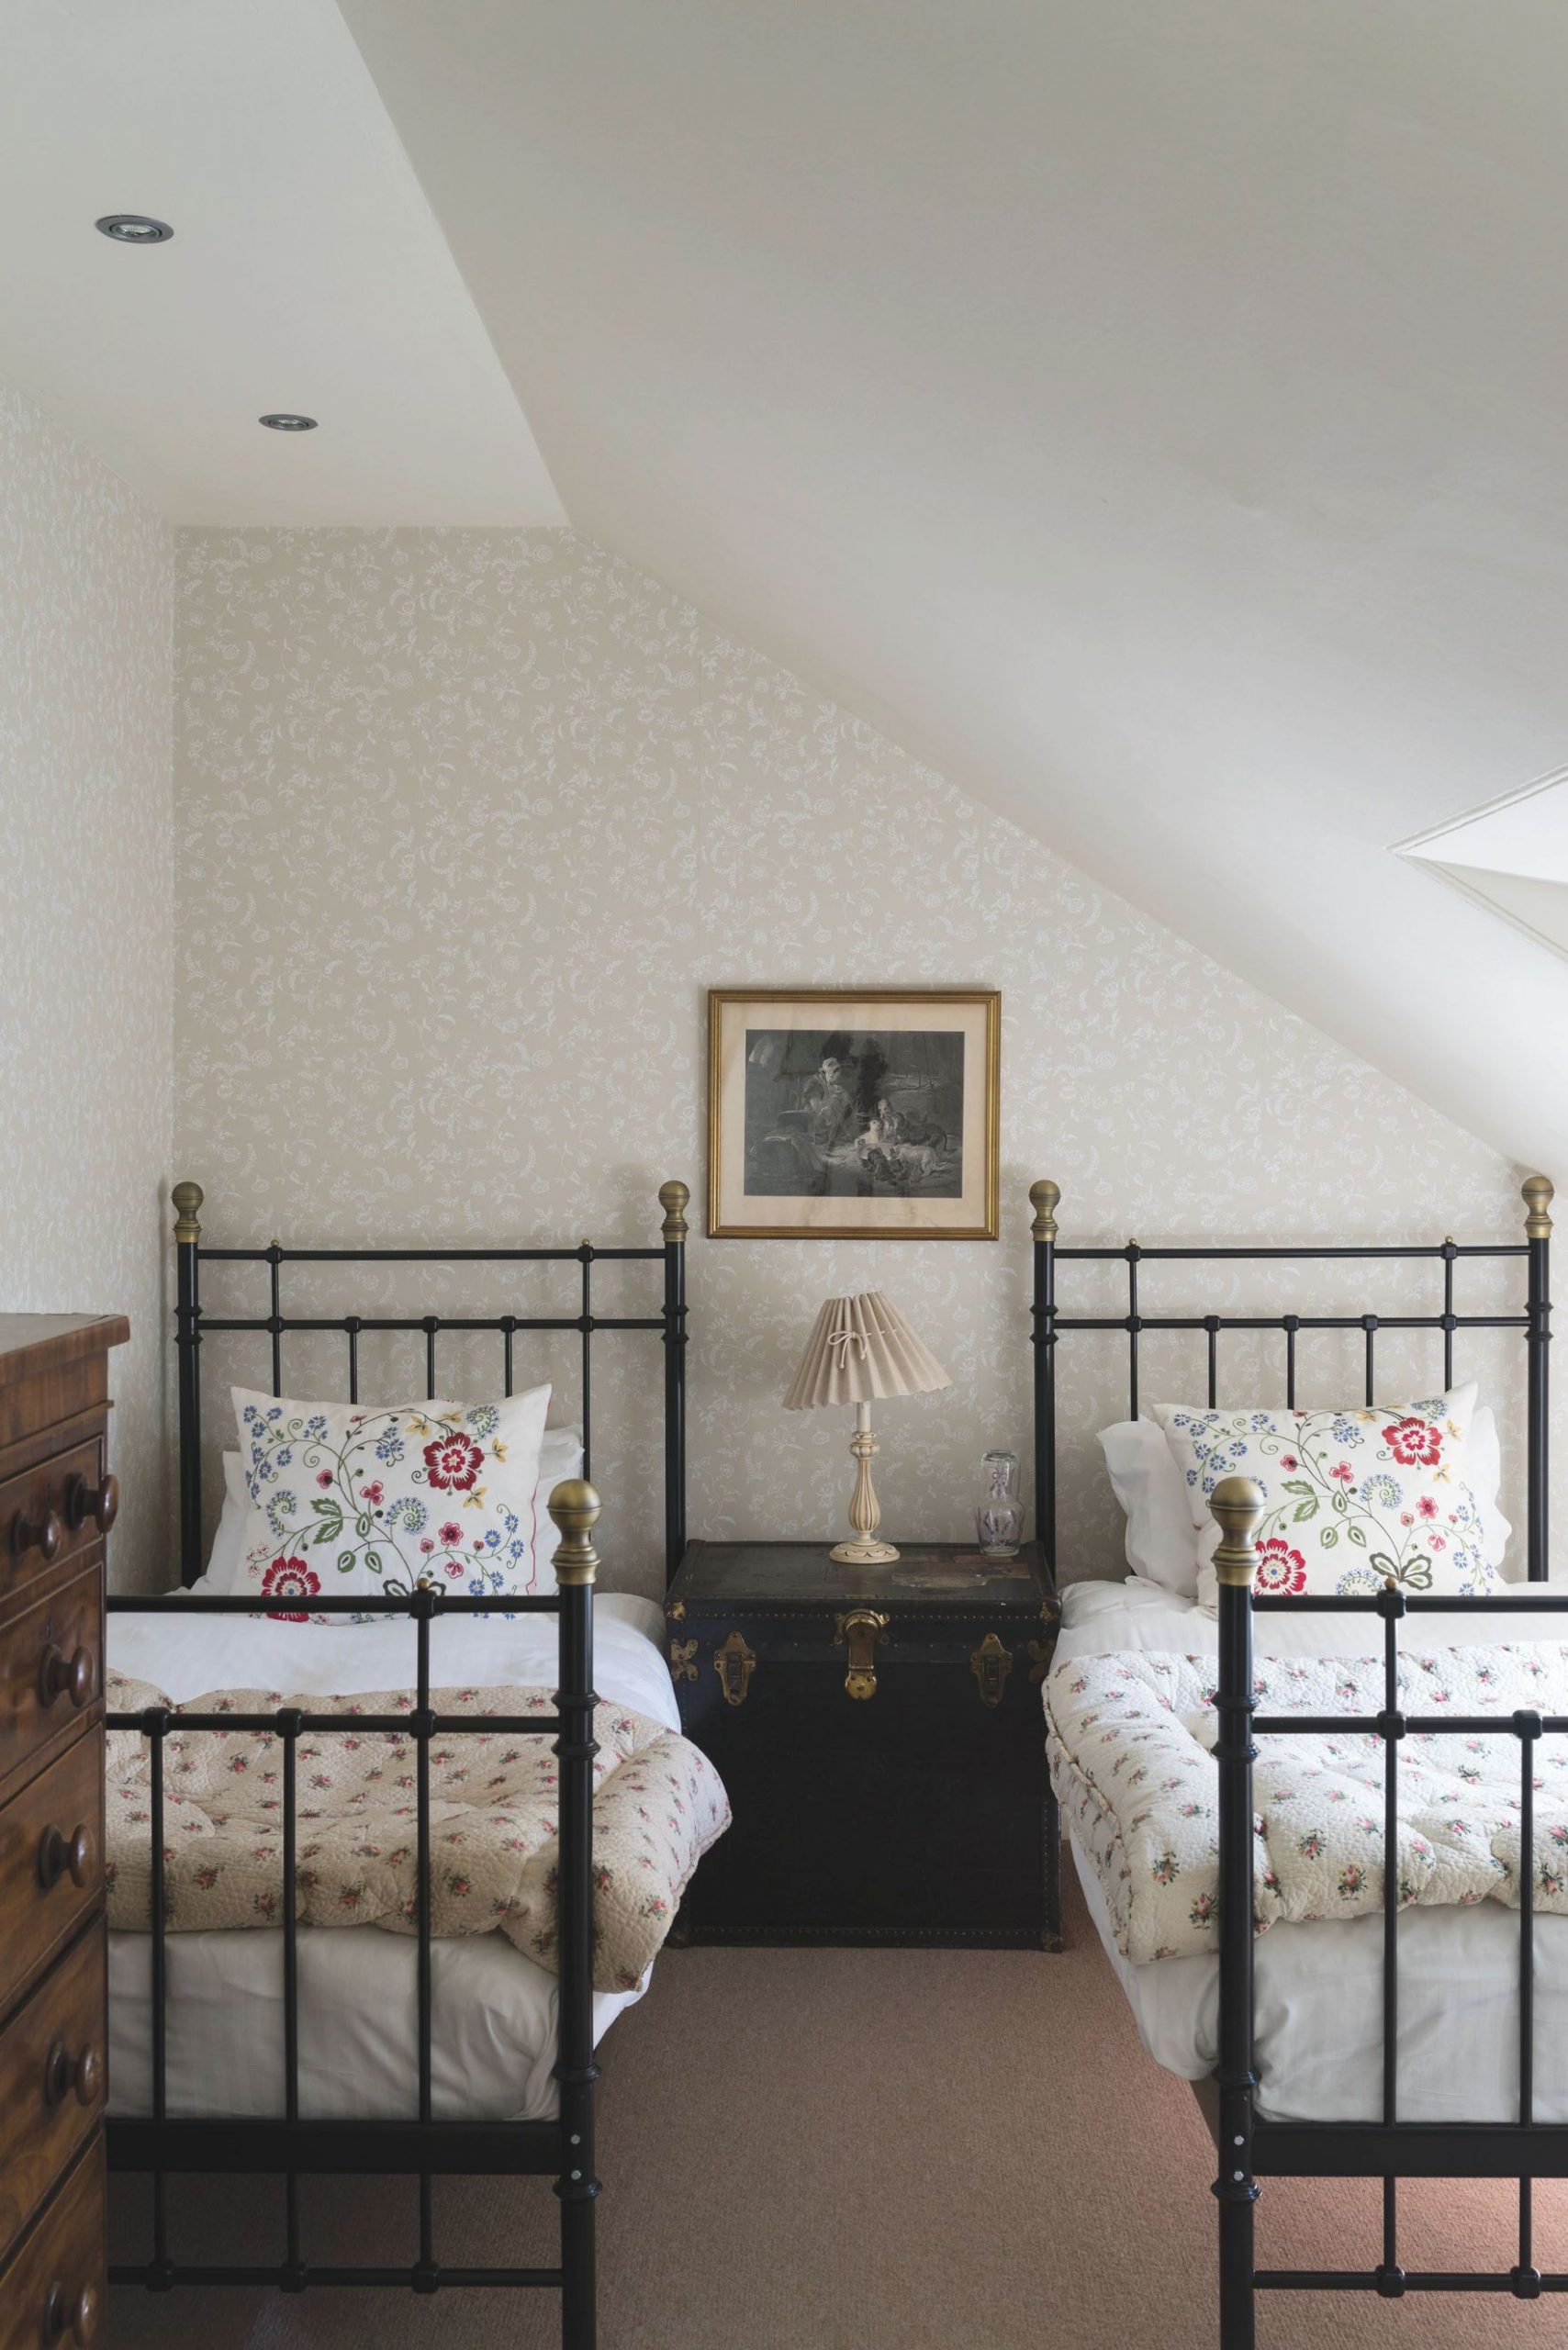 18 Small Bedroom Ideas To Fall In Love With – Small Bedroom within Small Bedroom Decorating Ideas